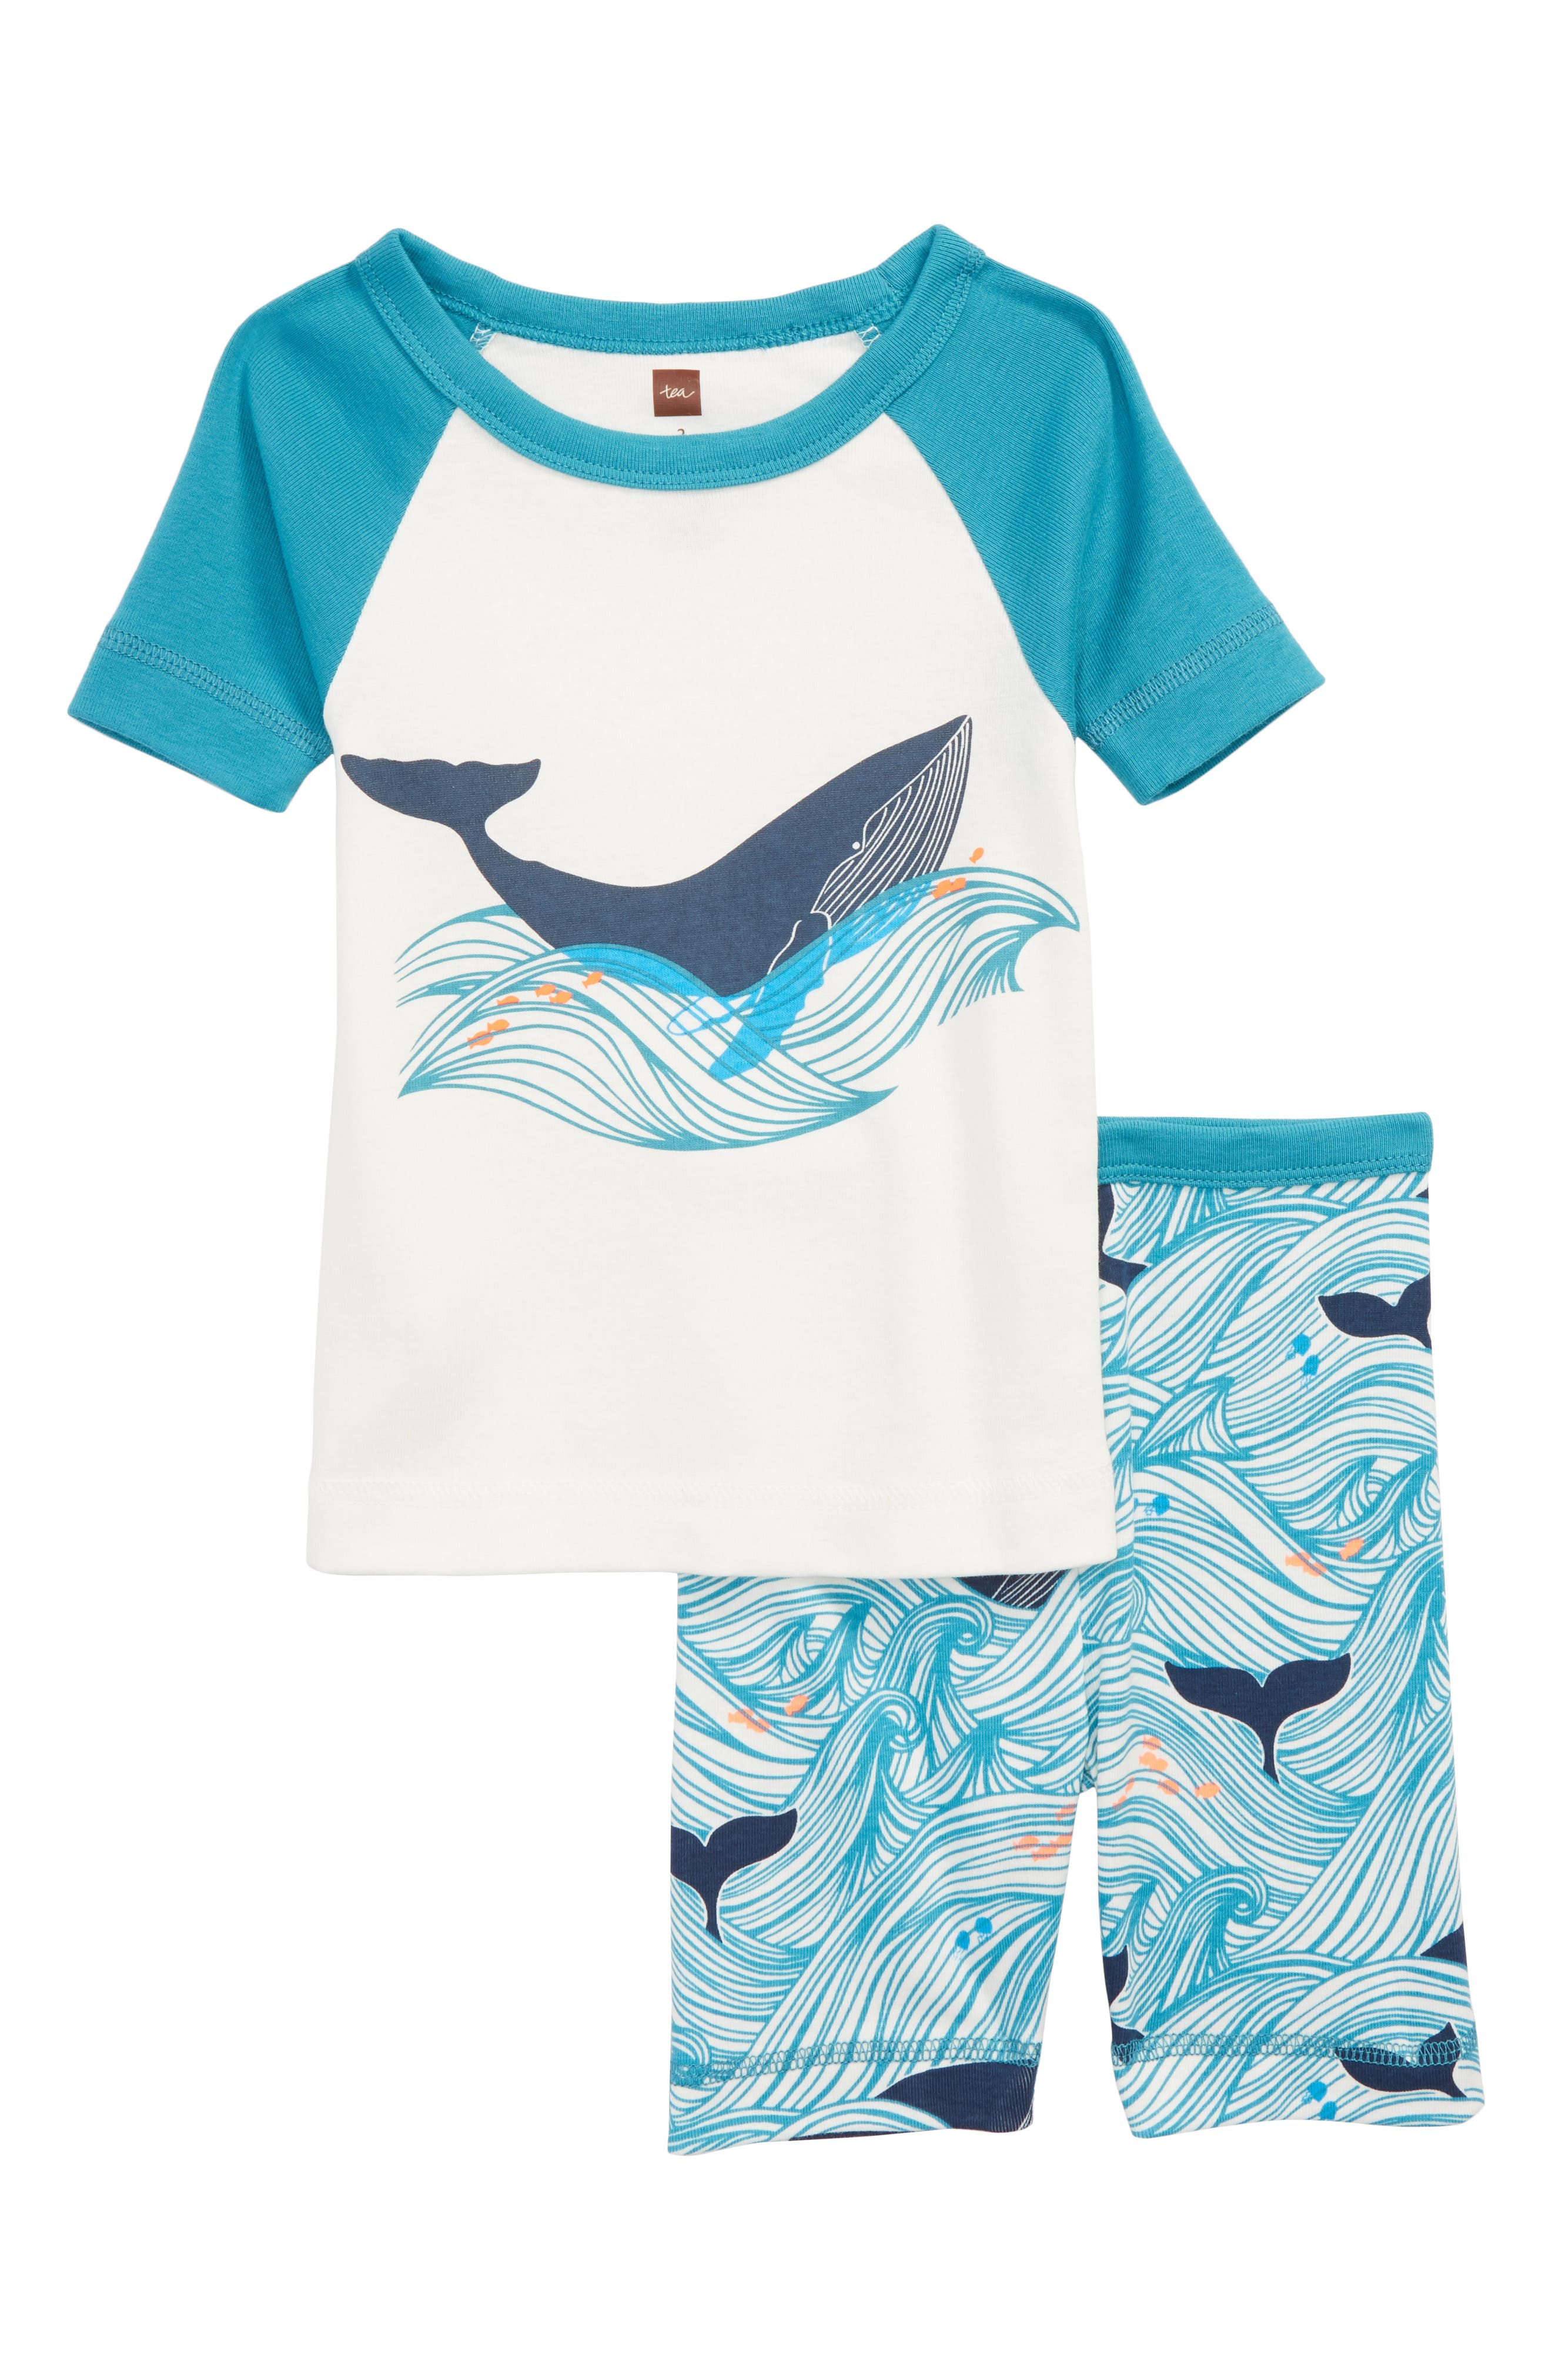 Main Image - Tea Collection Wavy Whale Fitted Two-Piece Short Pajamas (Toddler Boys, Little Boys & Big Boys)